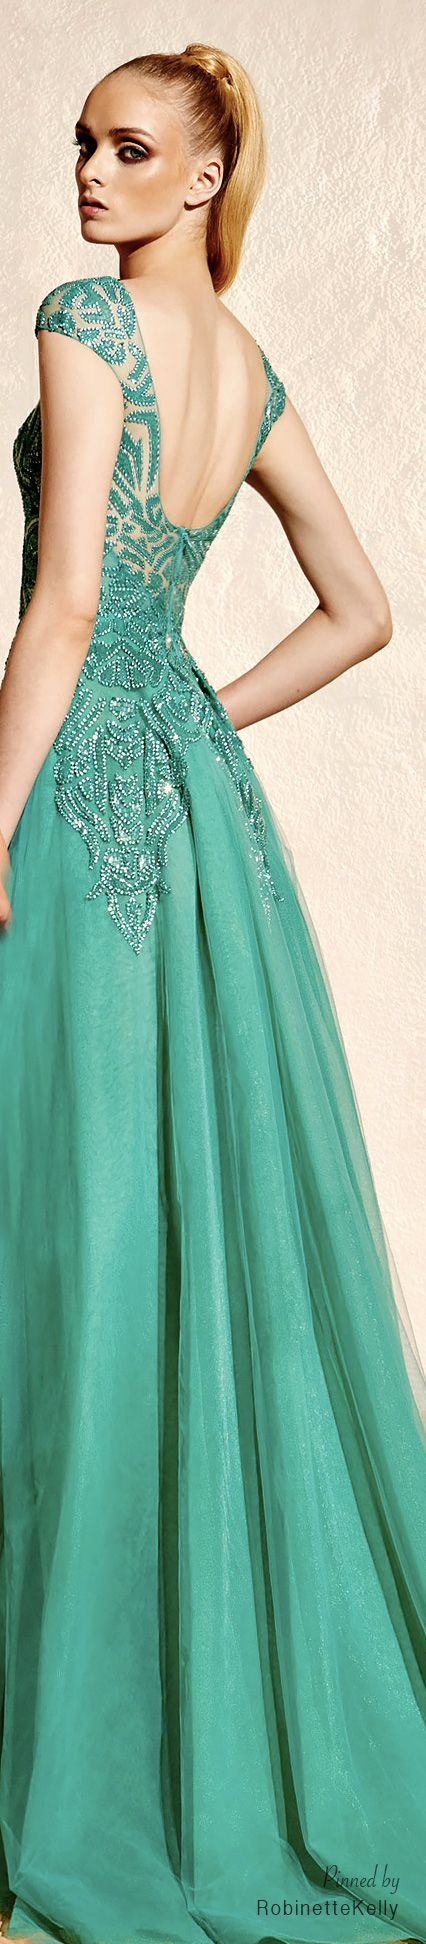 Aqua-marine, sleeveless gown with matching sequin detailing! ~ Zuhair Murad | Resort 2015